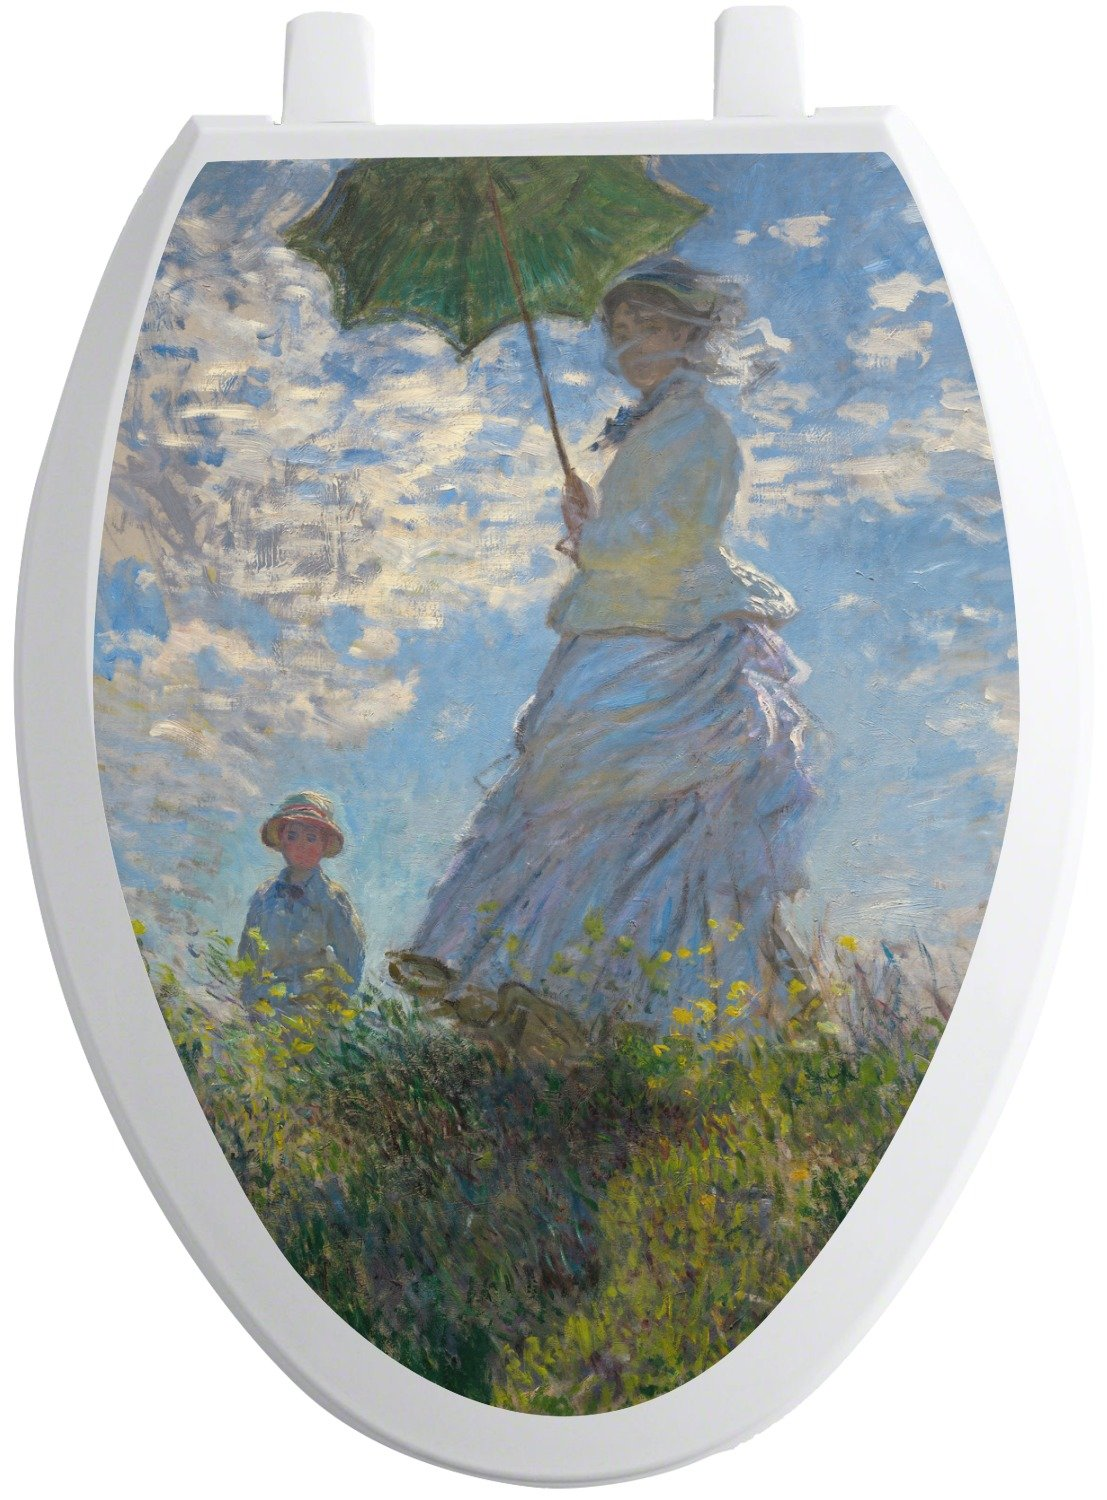 RNK Shops Promenade Woman by Claude Monet Toilet Seat Decal - Elongated